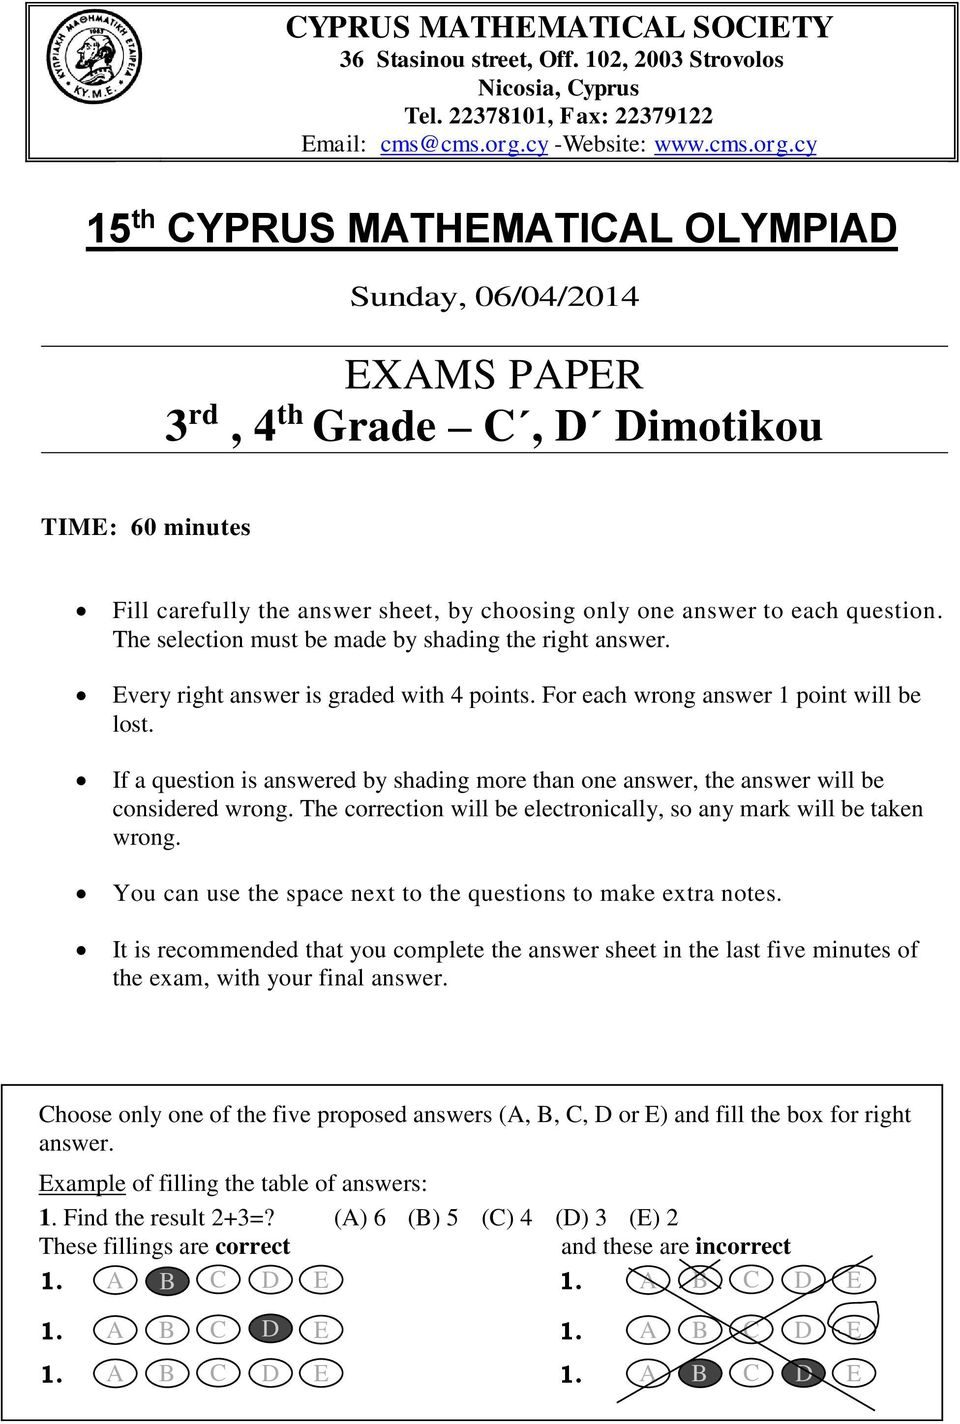 cy 15 th CYPRUS MATHEMATICAL OLYMPIAD Sunday, 06/04/2014 EXAMS PAPER 3 rd, 4 th Grade C, D Dimotikou TIME: 60 minutes Fill carefully the answer sheet, by choosing only one answer to each question.